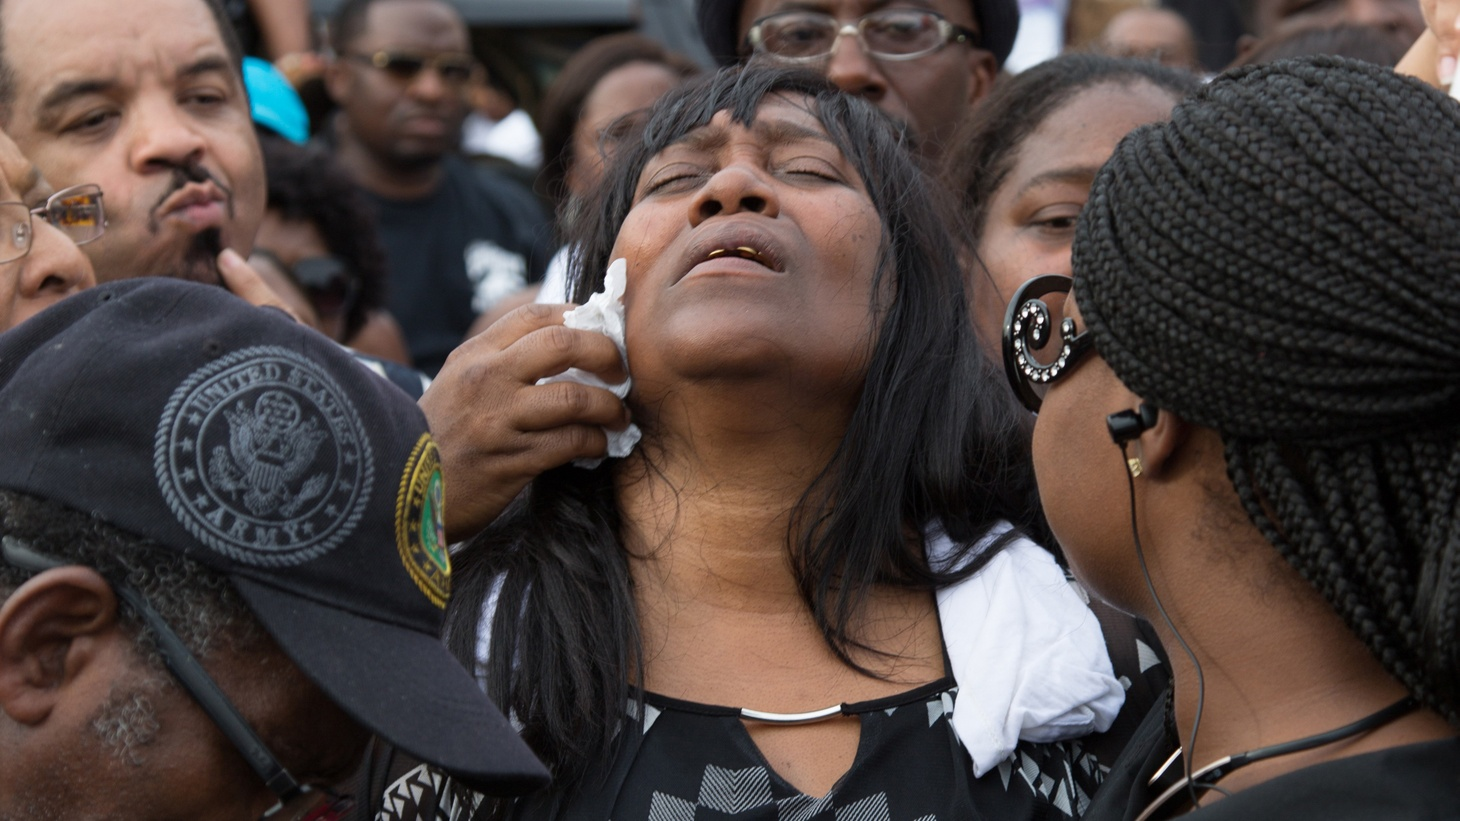 In just 48 hours, videos of two more black men fatally shot by cops have gone viral. How does the Black Lives Matter movement move forward?